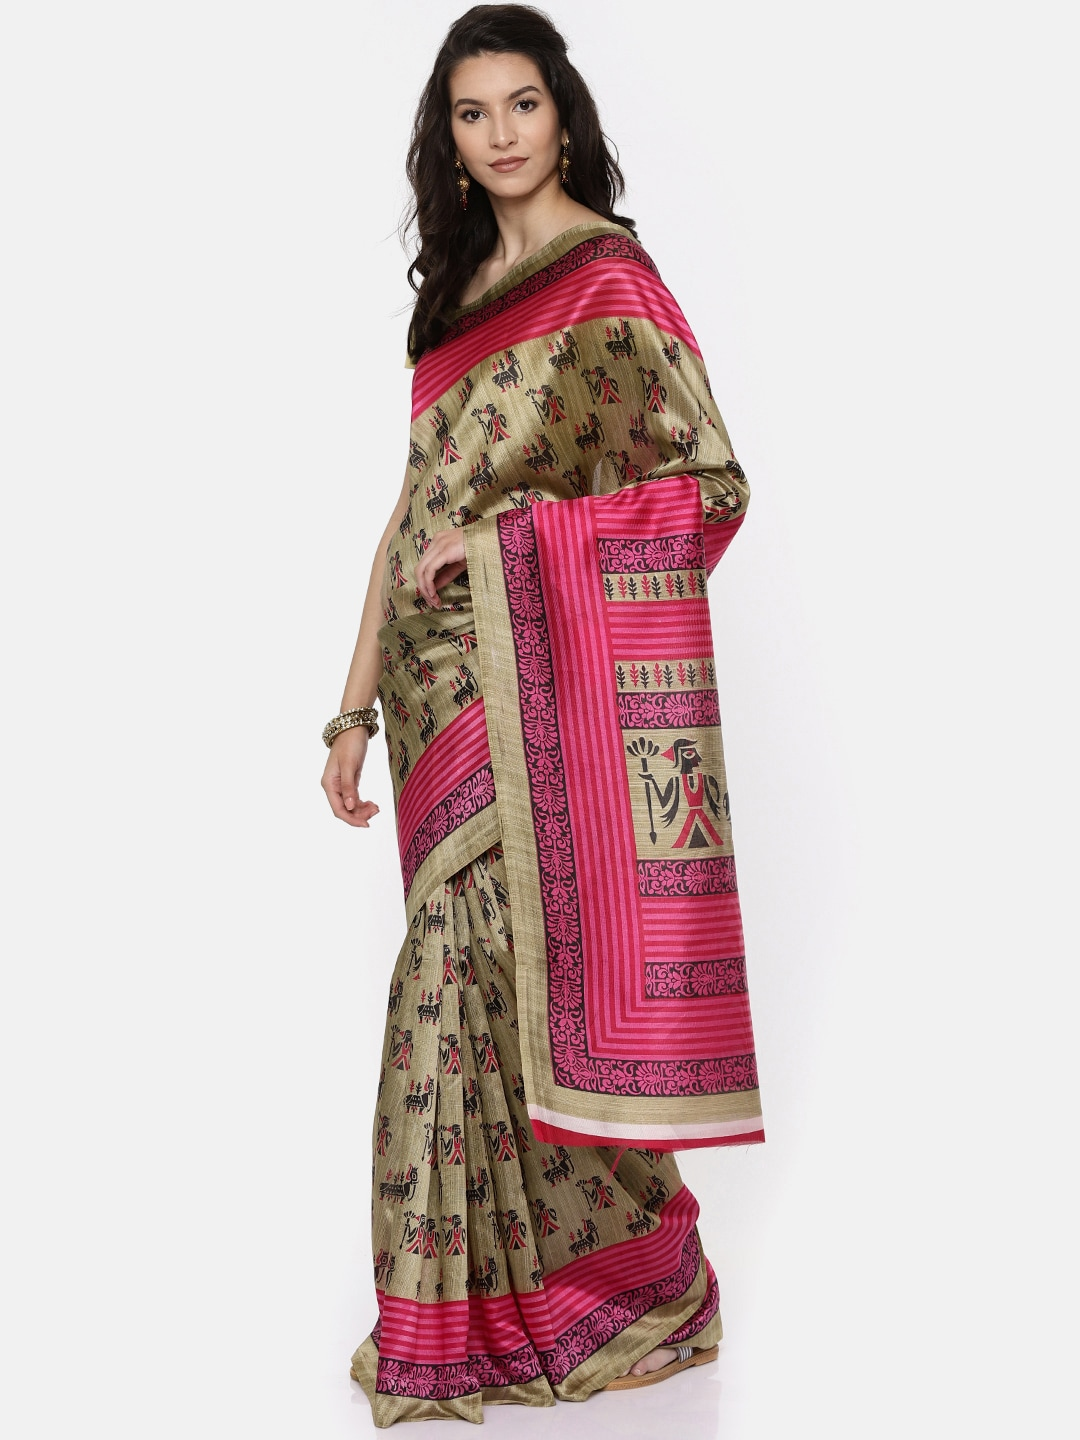 acde8087c Printed Saree - Buy Printed Sarees for Women Online in India